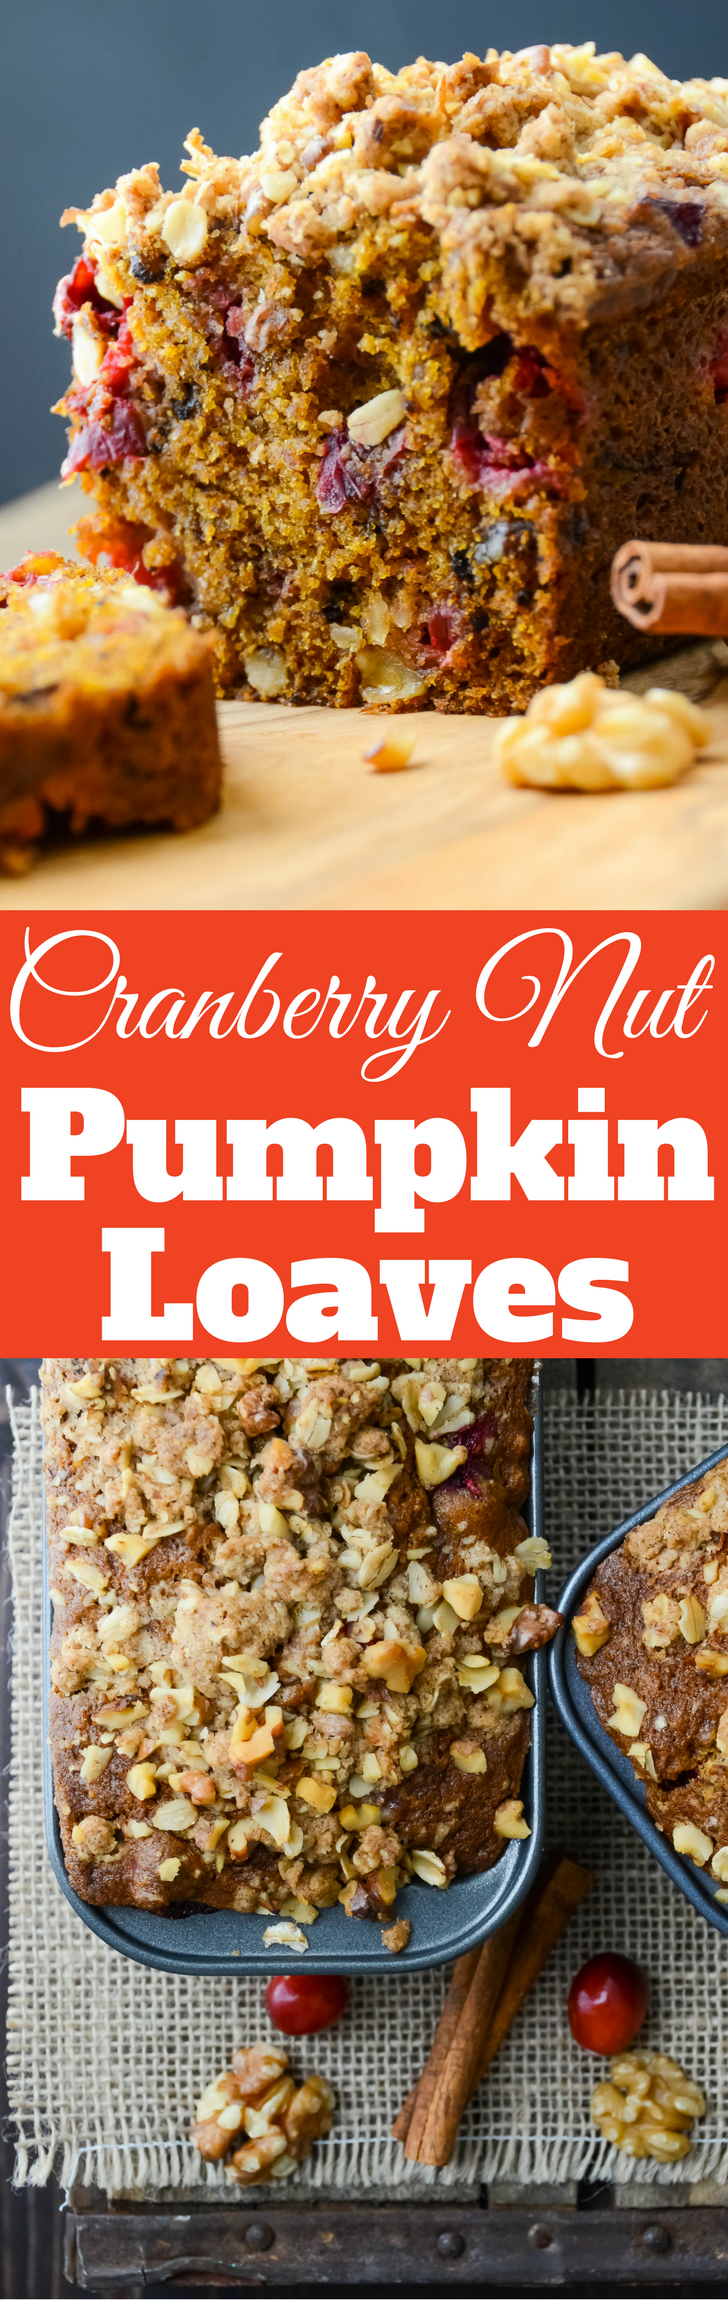 Looking for an easy pumpkin bread with a twist?  This simple recipe for Cranberry Nut Pumpkin Loaves has cranberries, nuts and a streusel topping!